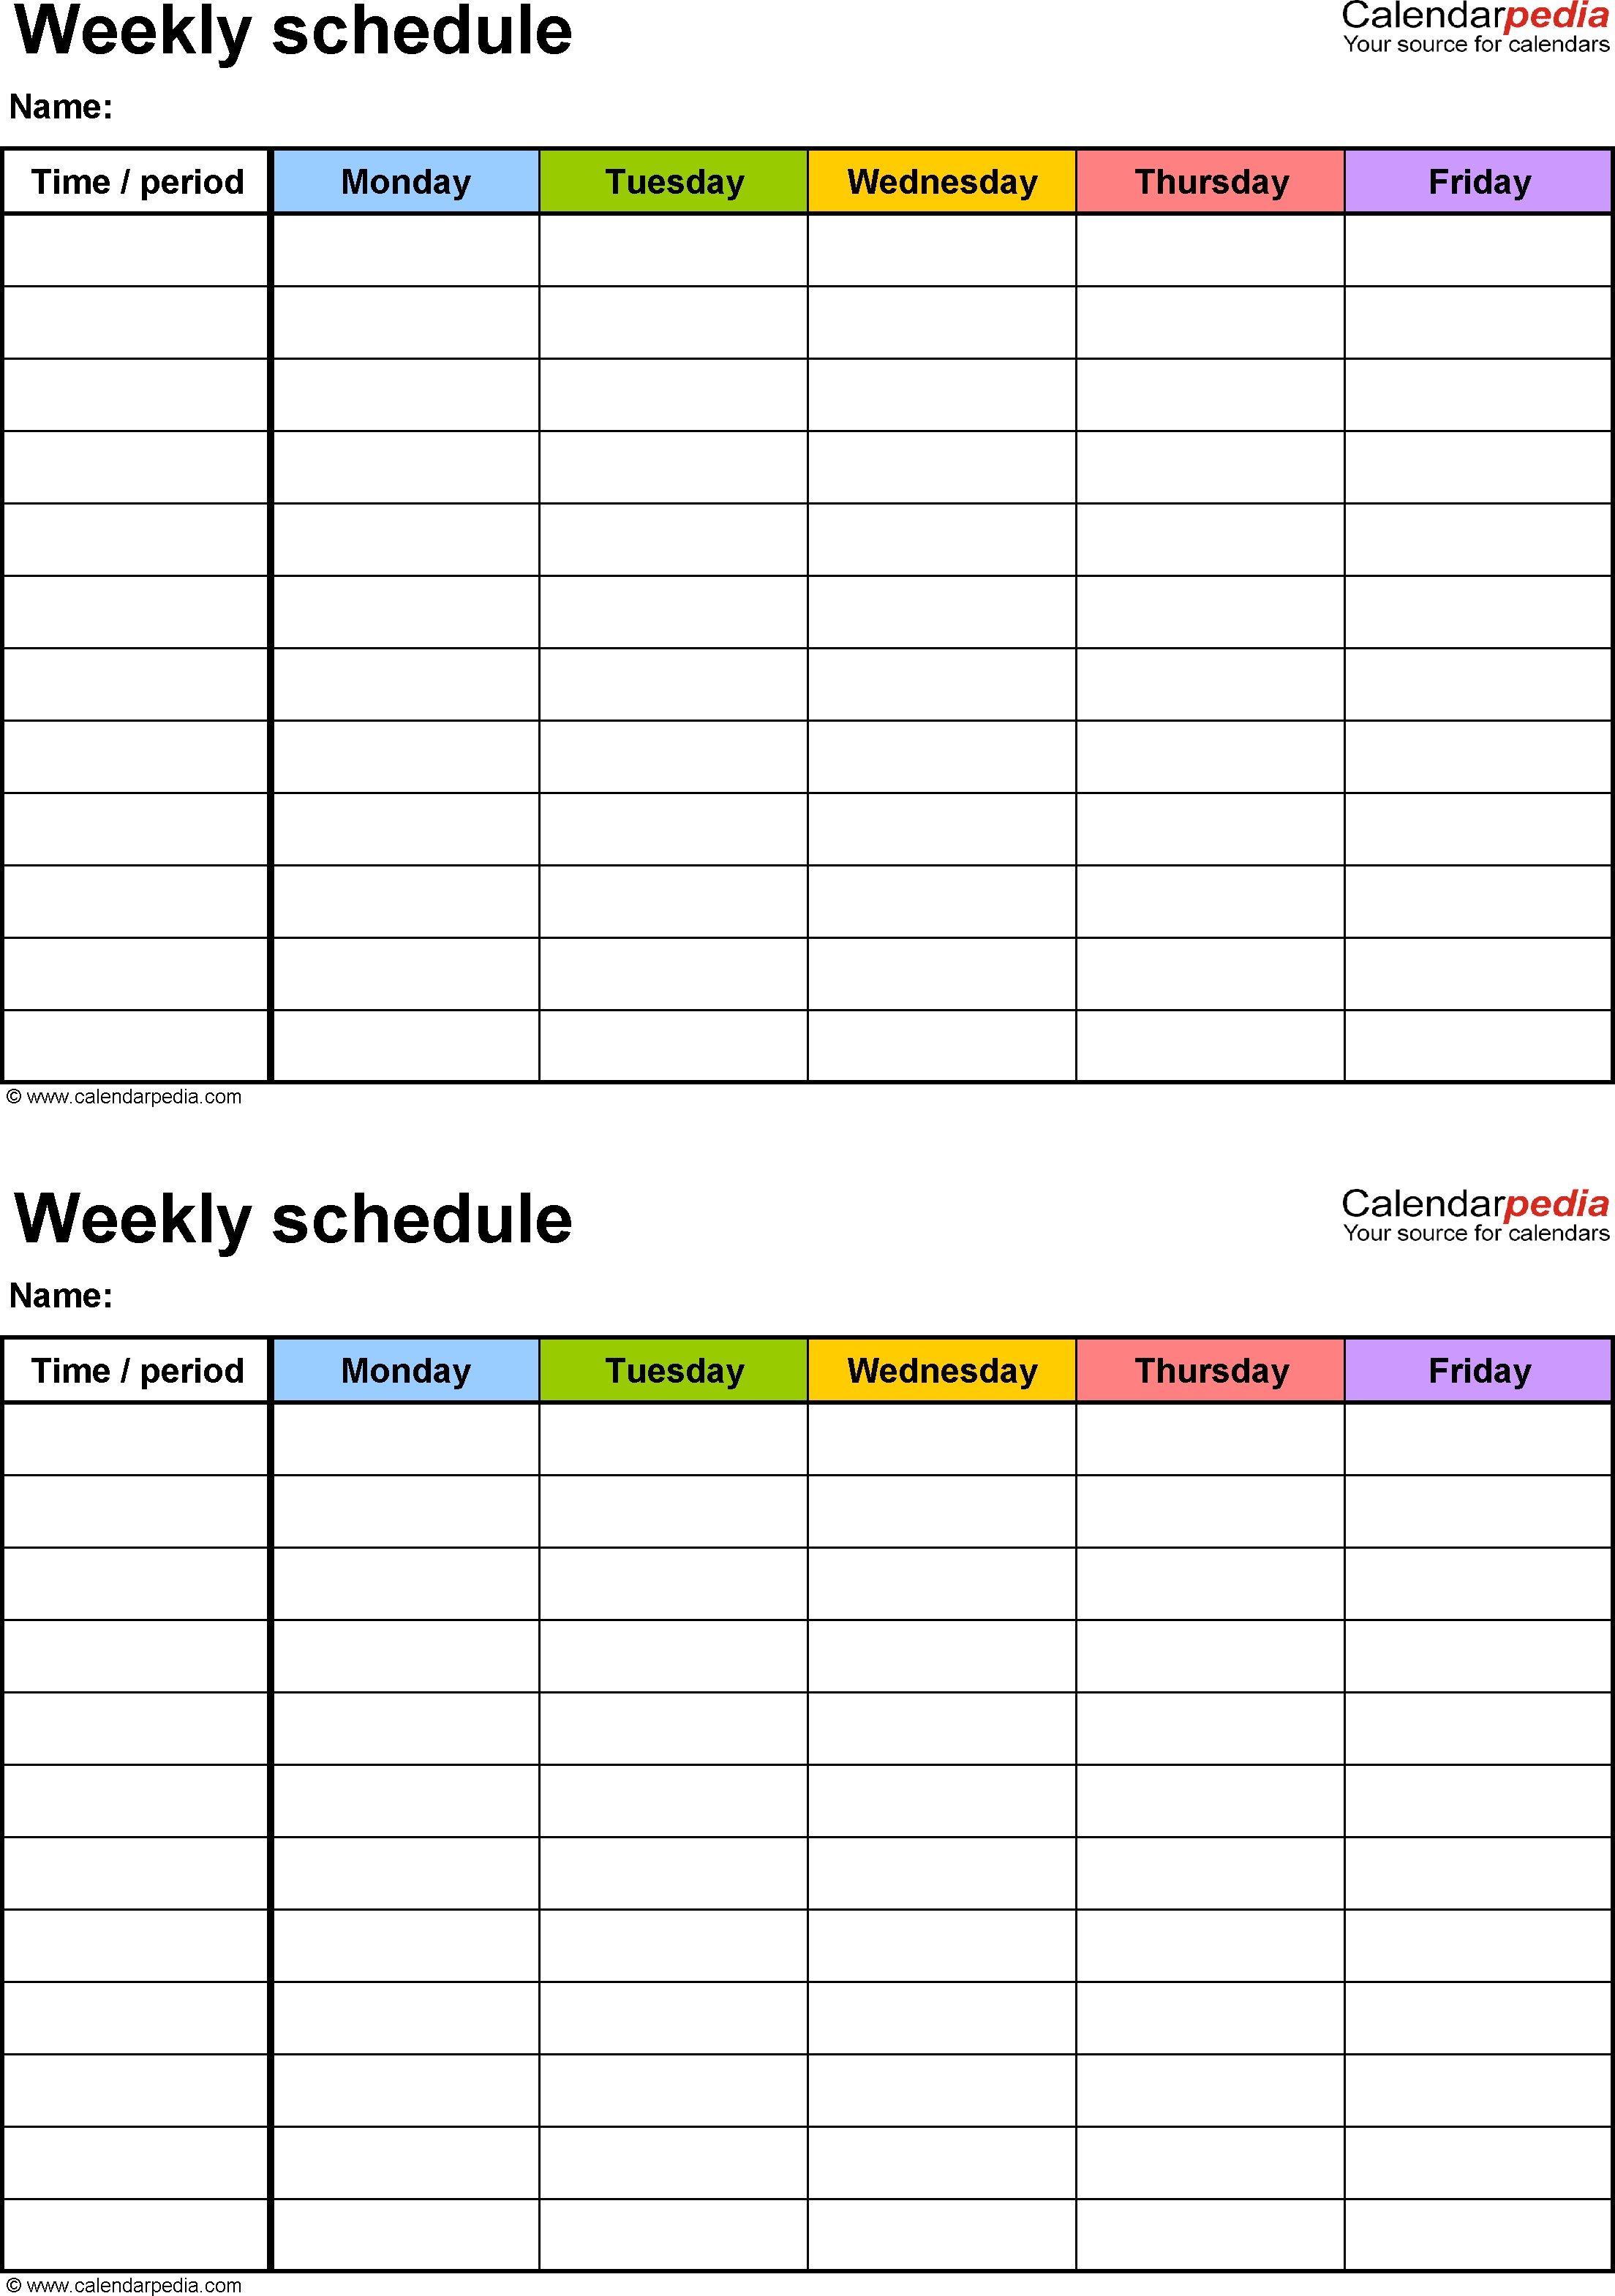 Free Weekly Schedule Templates For Excel - 18 Templates intended for One Week Calendar Template Exercise